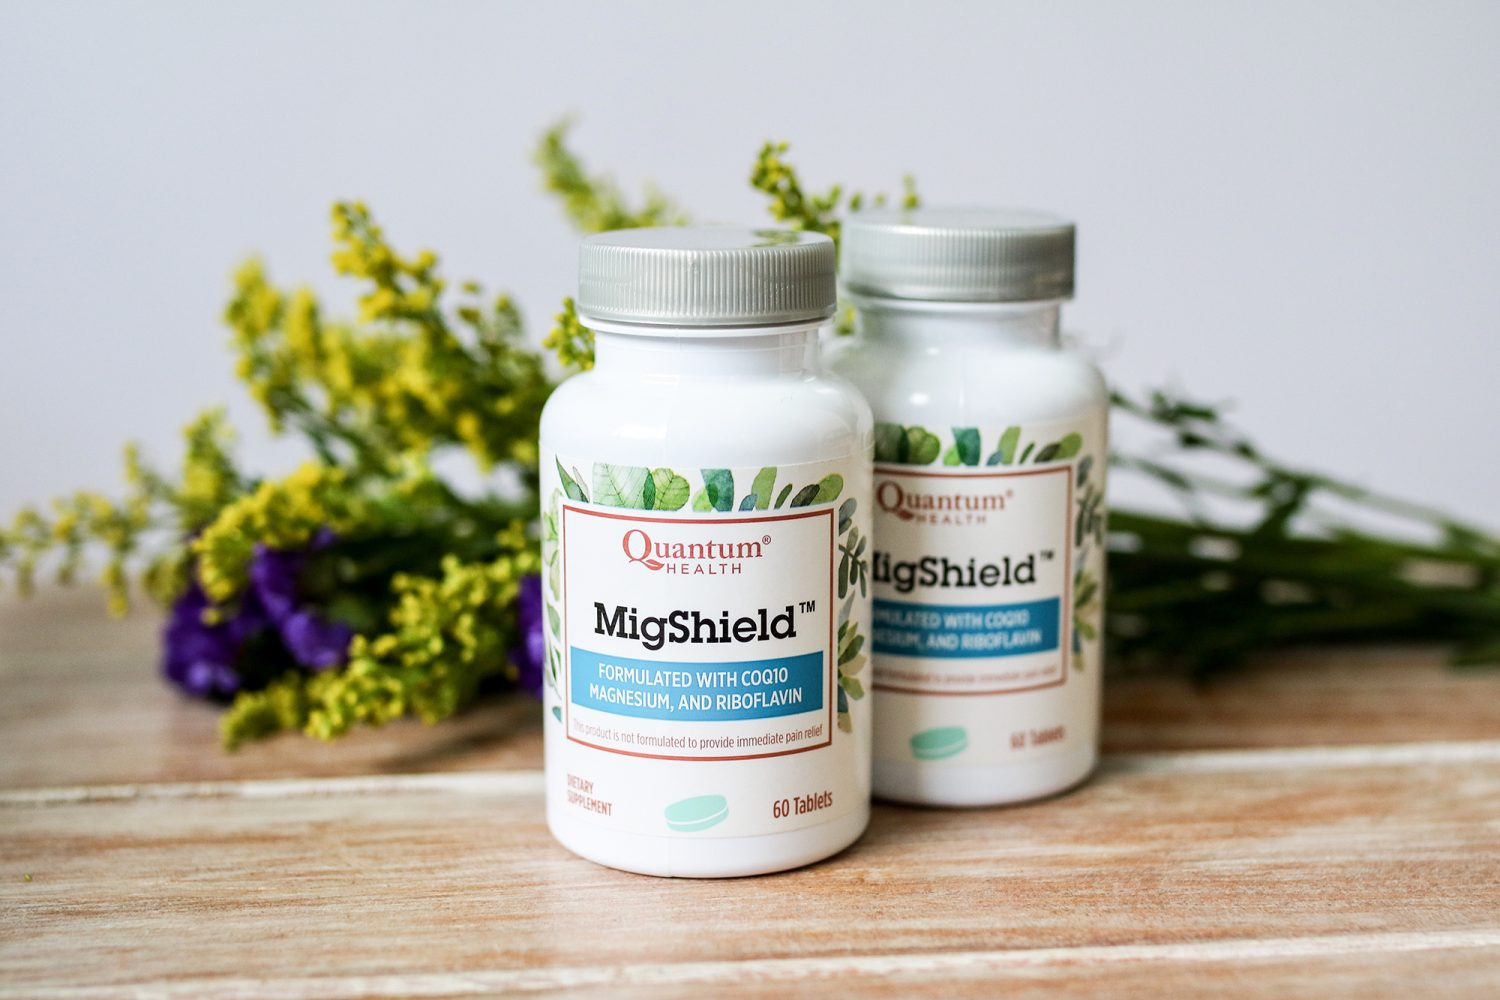 migshield, migraine, headache relief, migraine relief, tension headaches, cluster headaches, how to cure migraines, migraine medicine, mom blog, mom blogger, mommy blog, mommy blogger, 2018, family blog, parenting blog, the super mom life, thesupermomlife, travel blogger, parenting blogger, family blogger